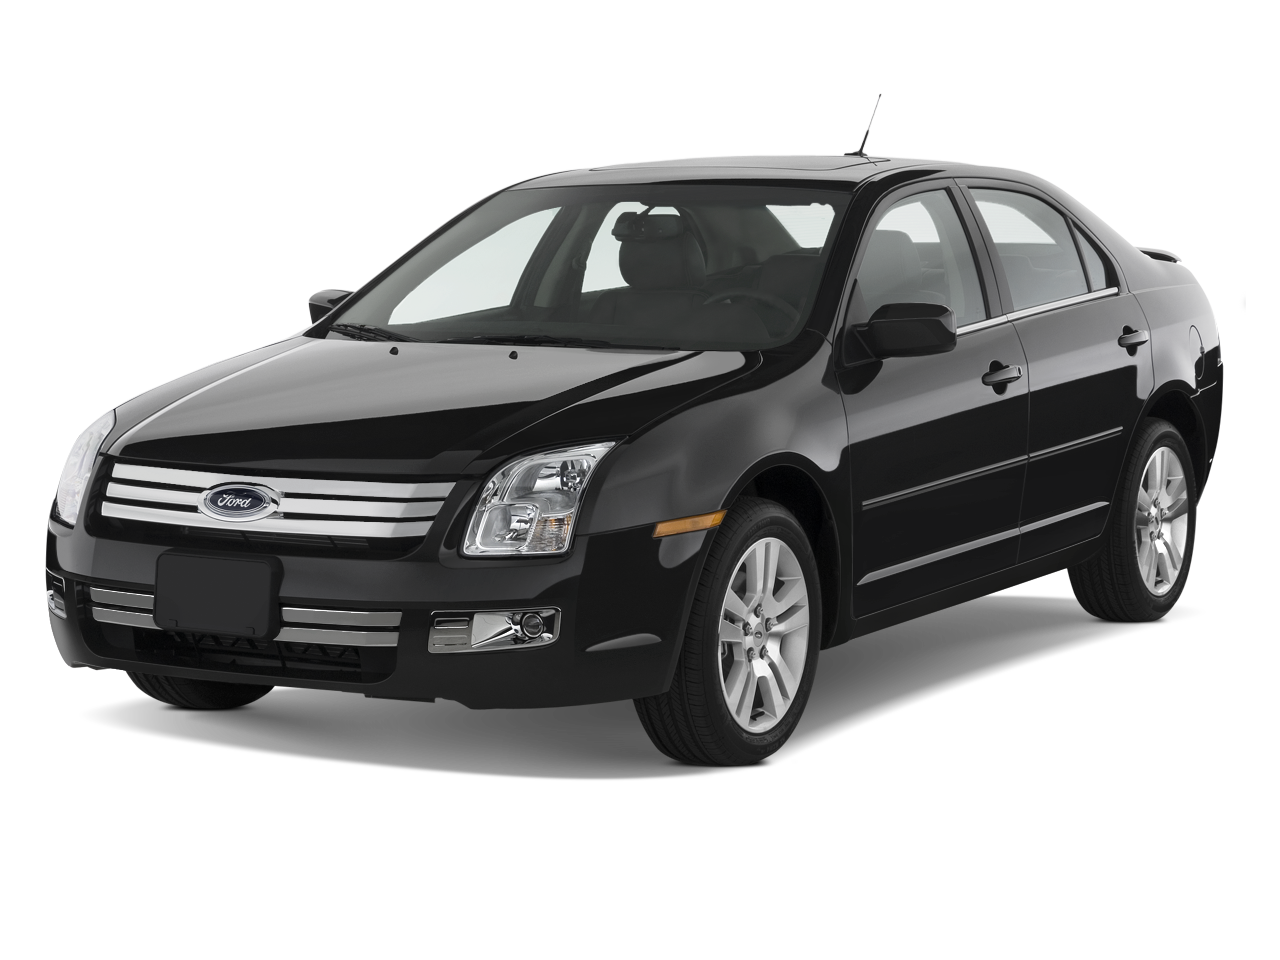 2007 ford fusion sedan pictures information and specs. Black Bedroom Furniture Sets. Home Design Ideas